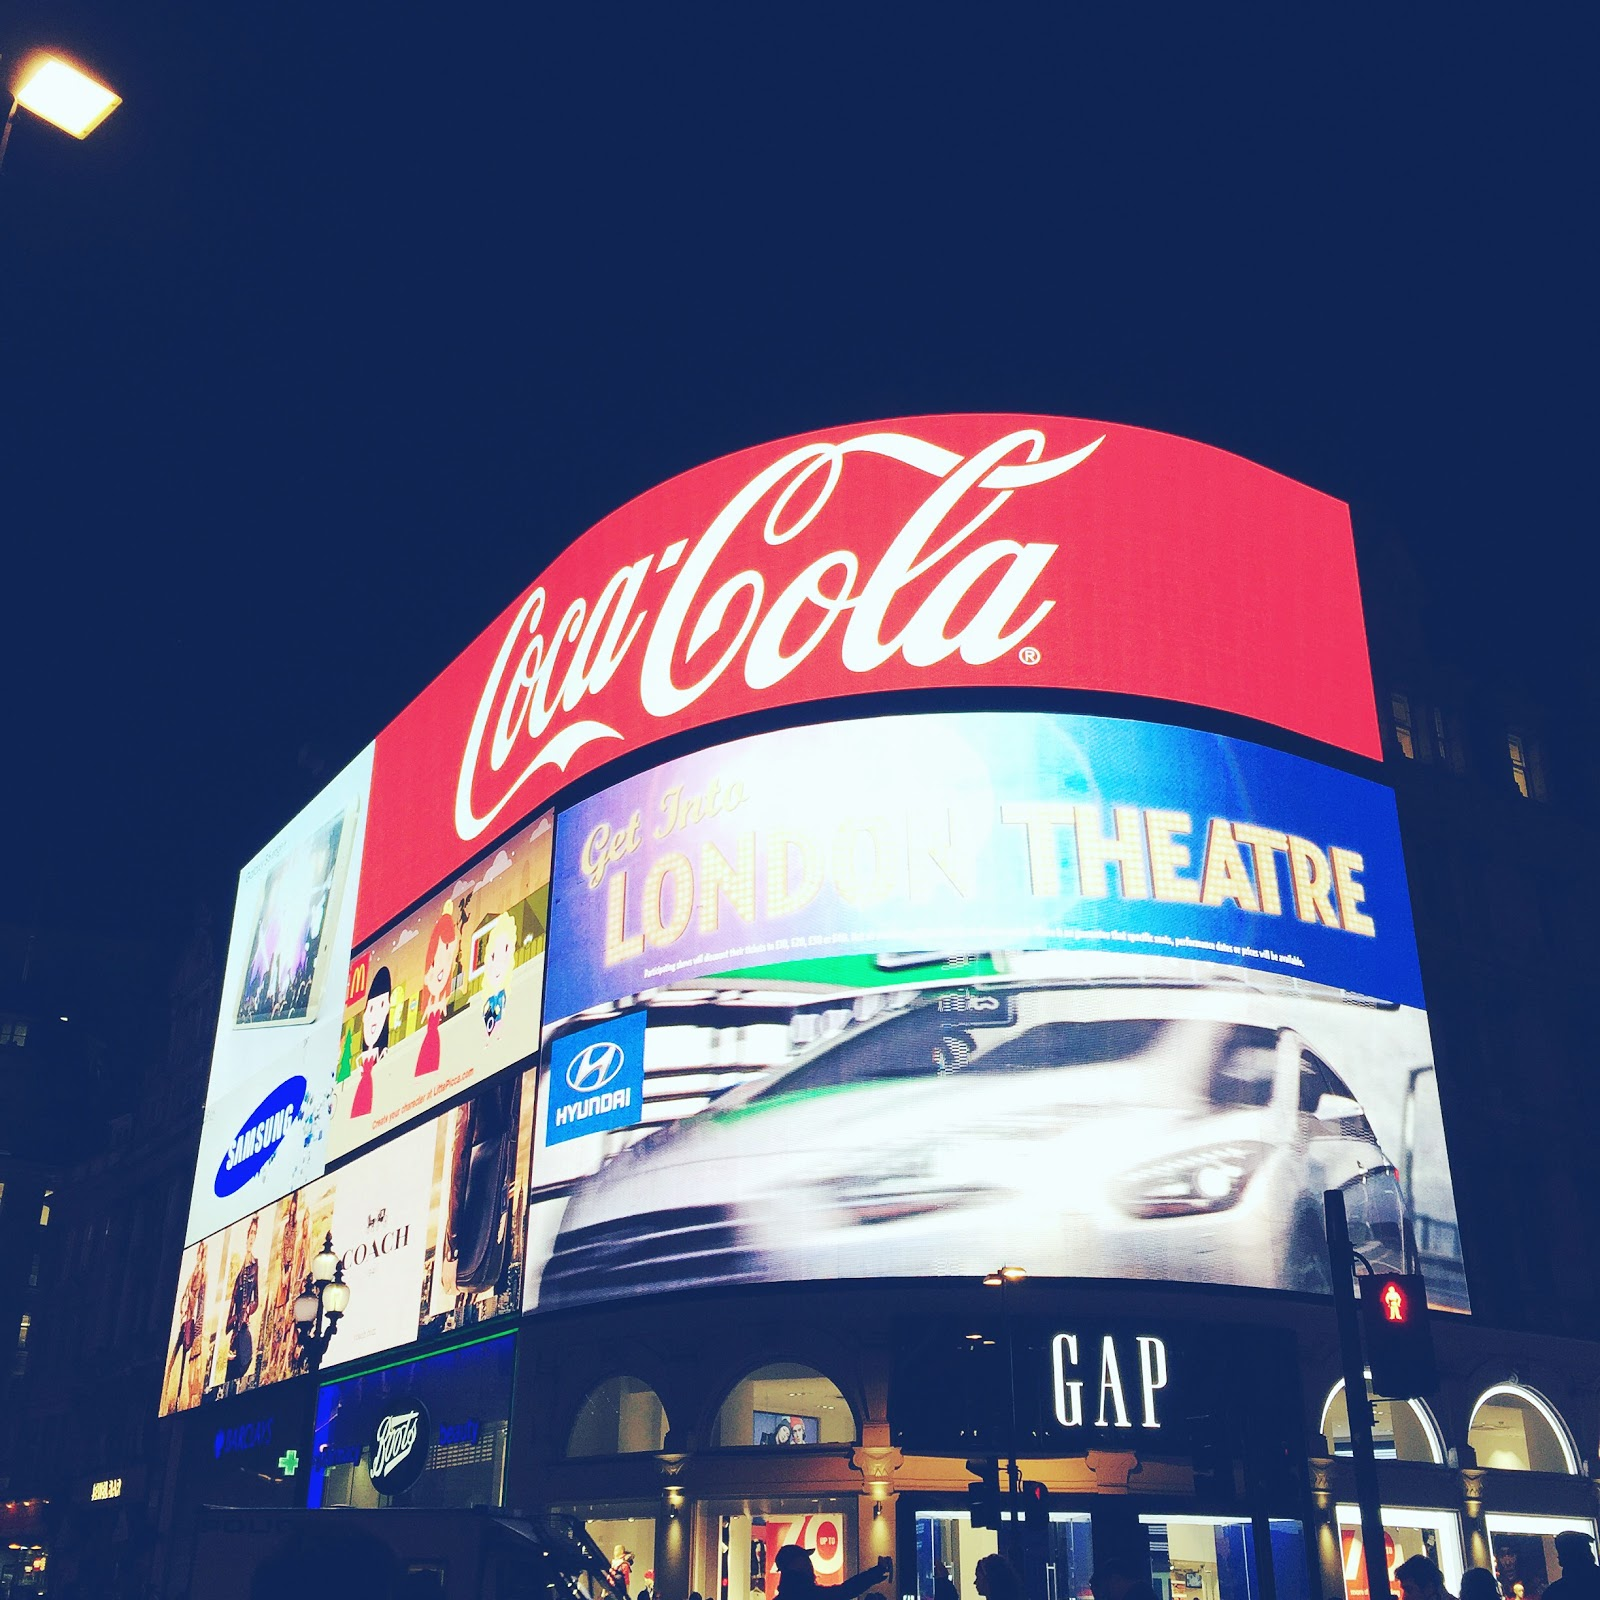 things to do in london for 2 days, piccadilly circus